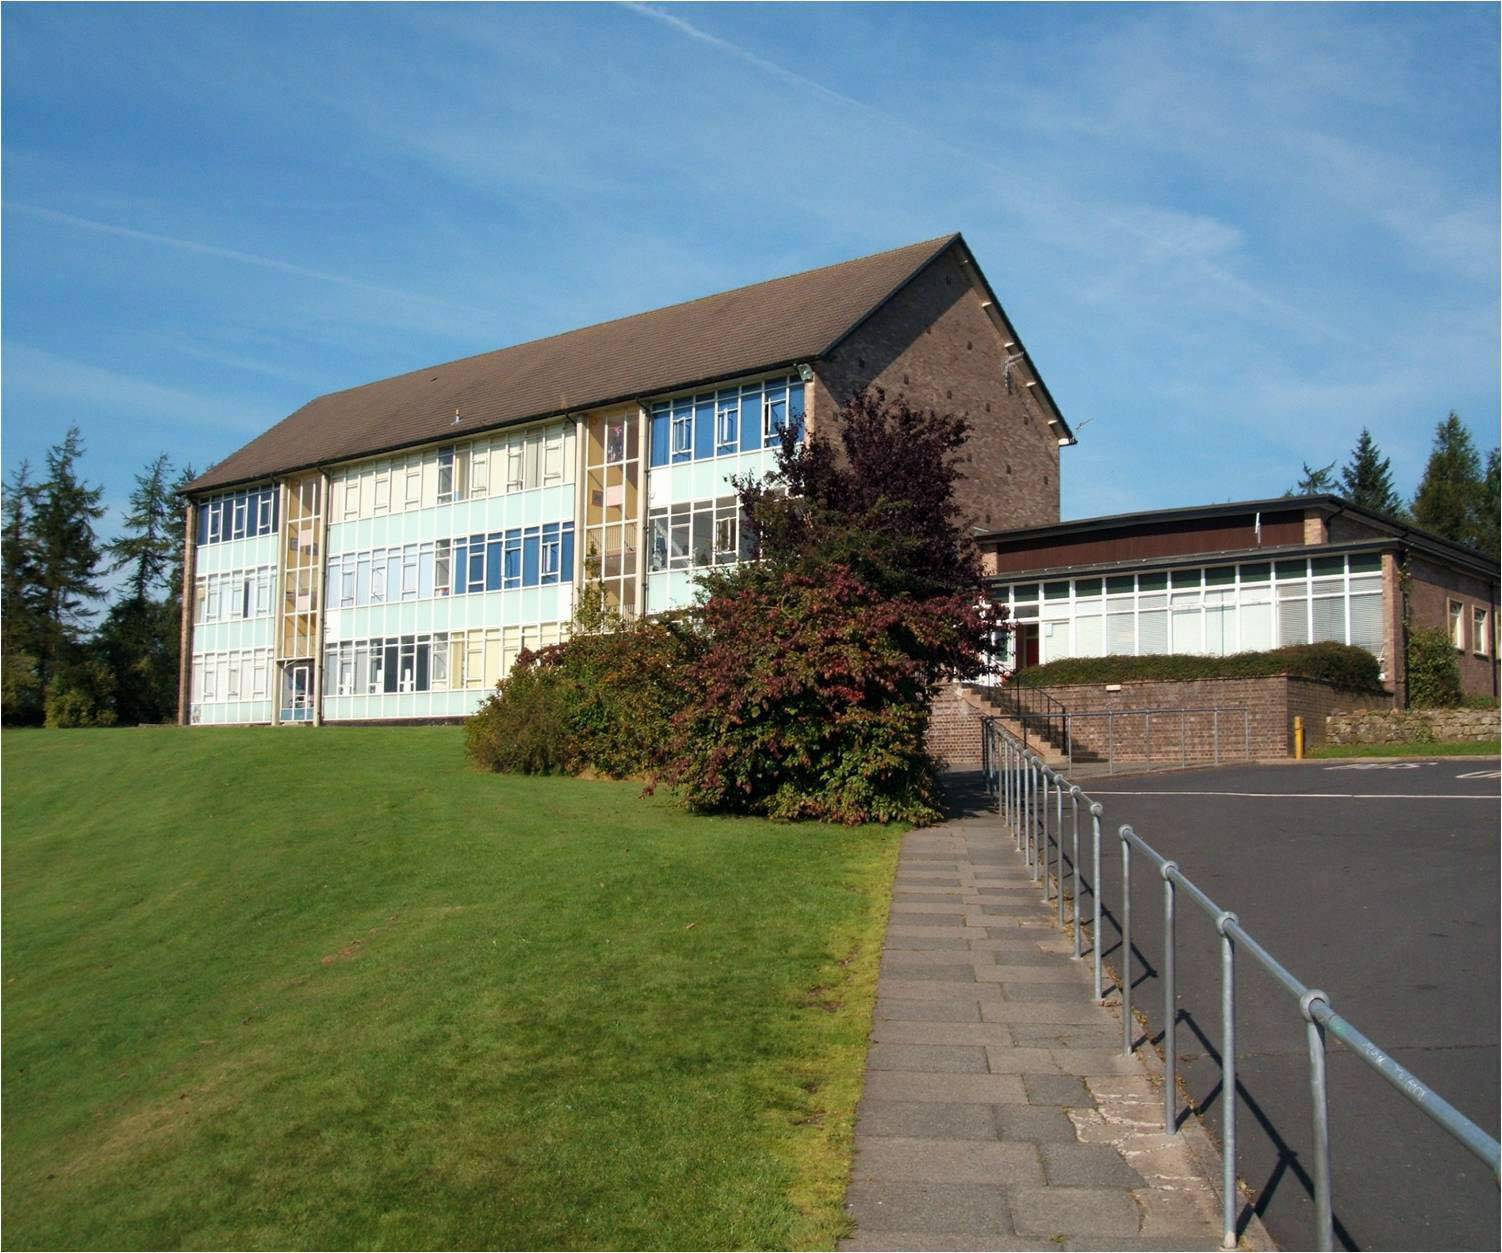 Haltwhistle Community Campus